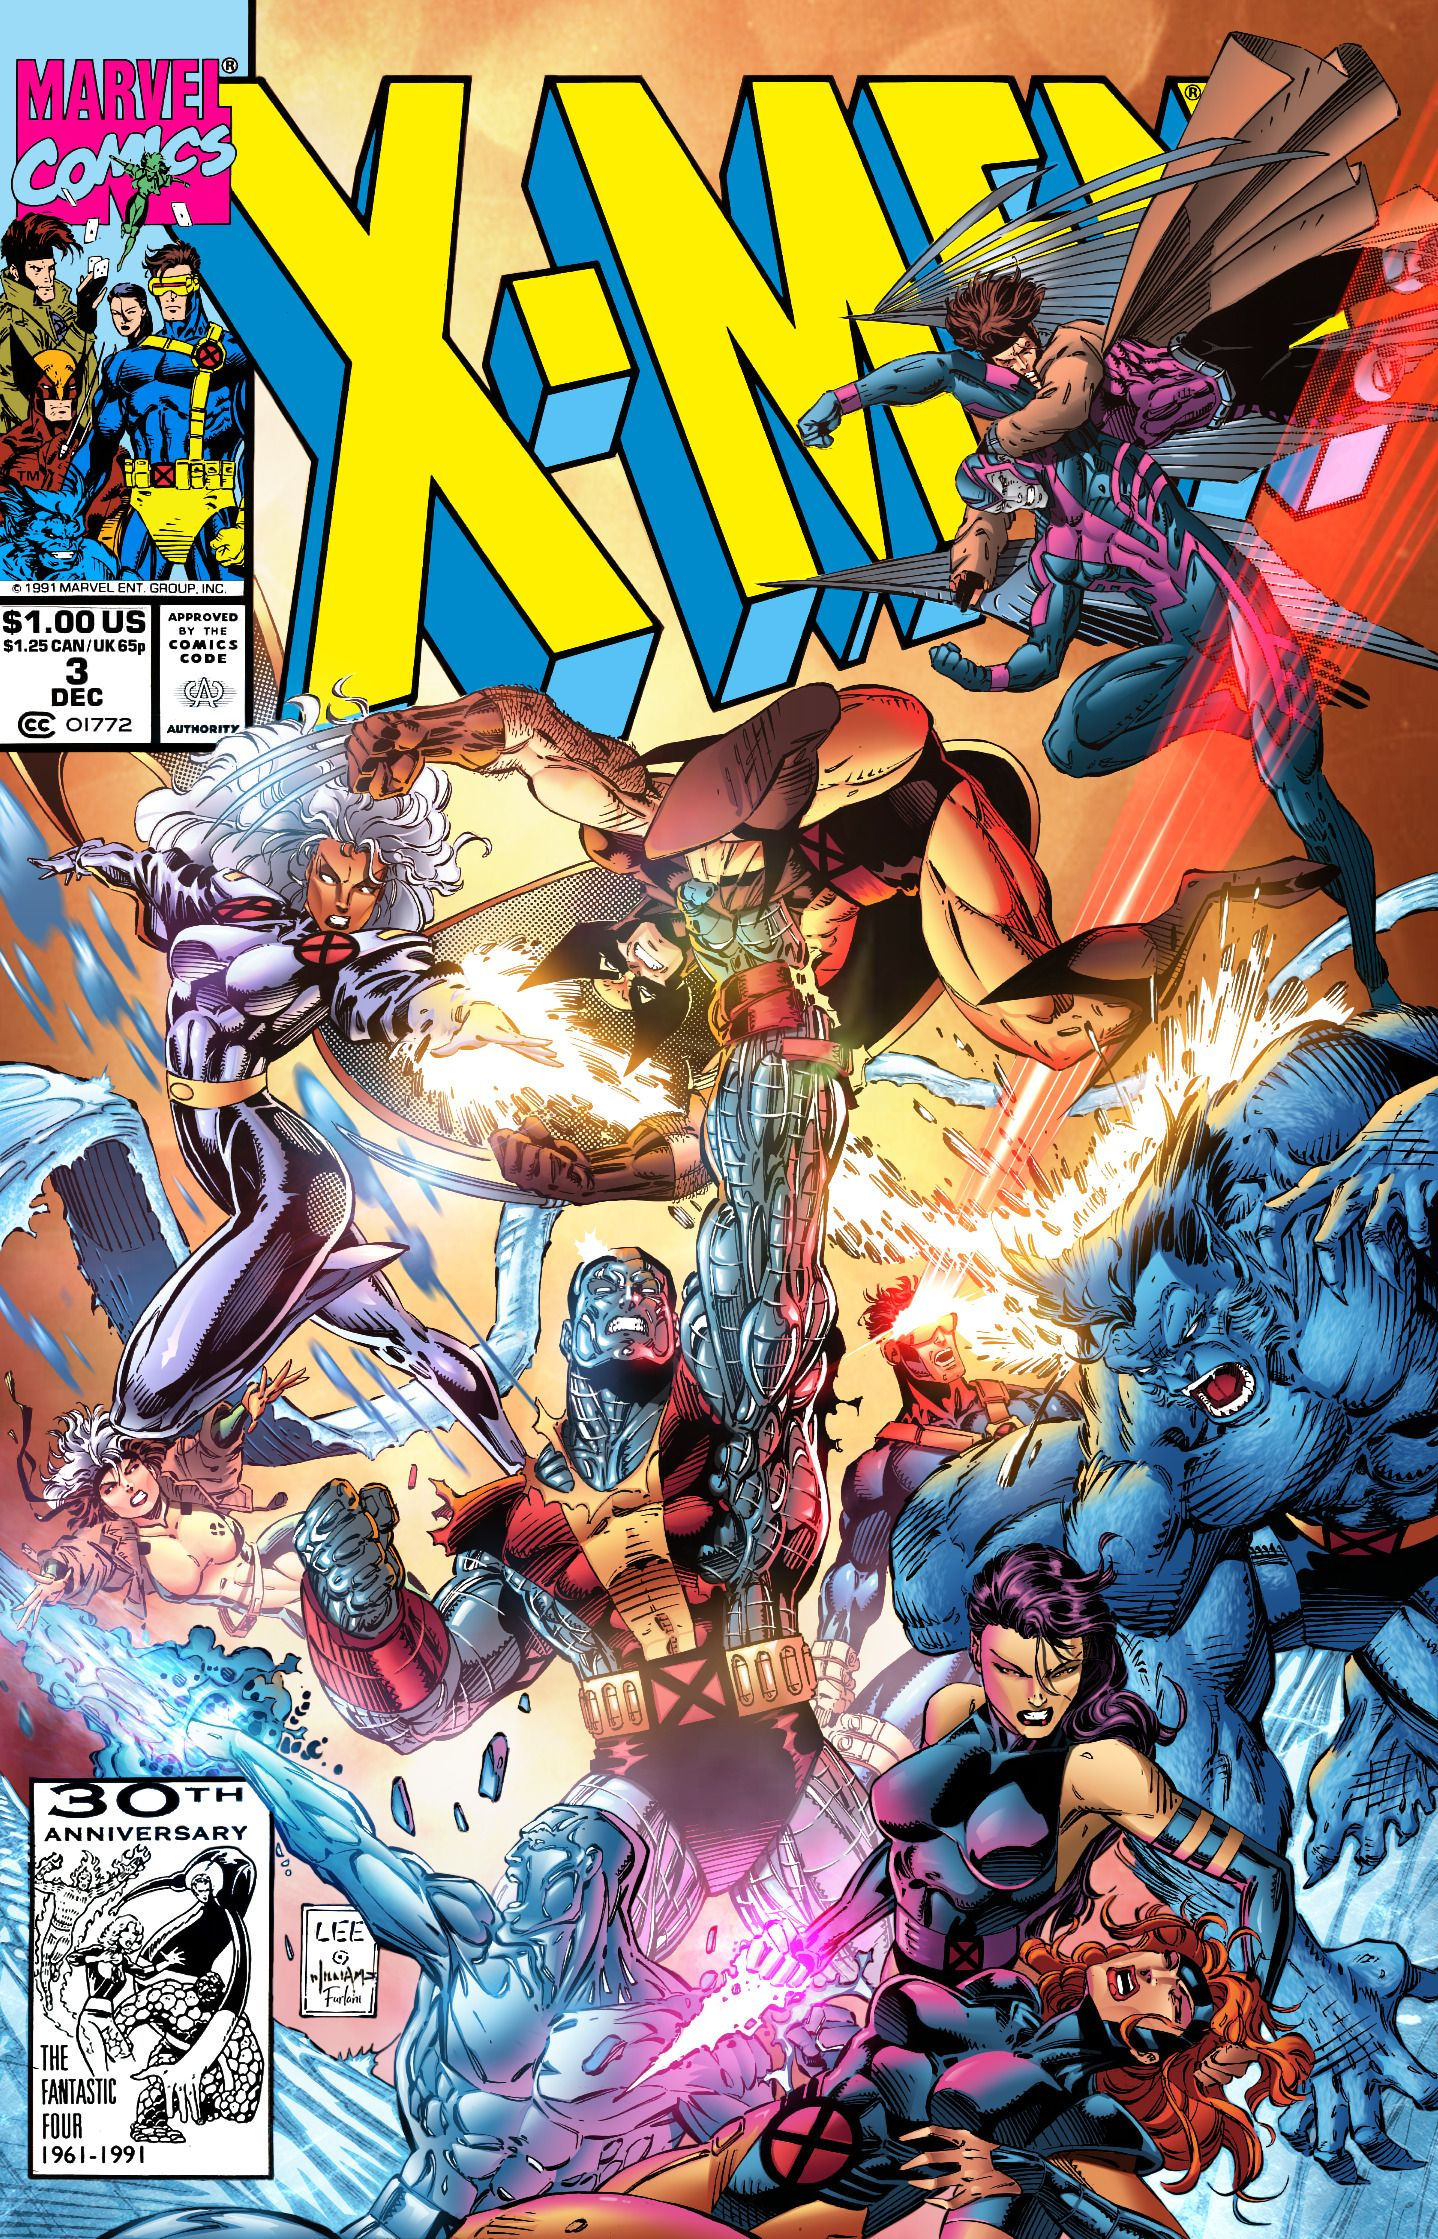 X Men 1991 Issue 3 Cover Pencils By Jim Lee Inks By Scott Williams Colors By Me In 2020 Jim Lee Art Xmen Art Marvel Comics Art